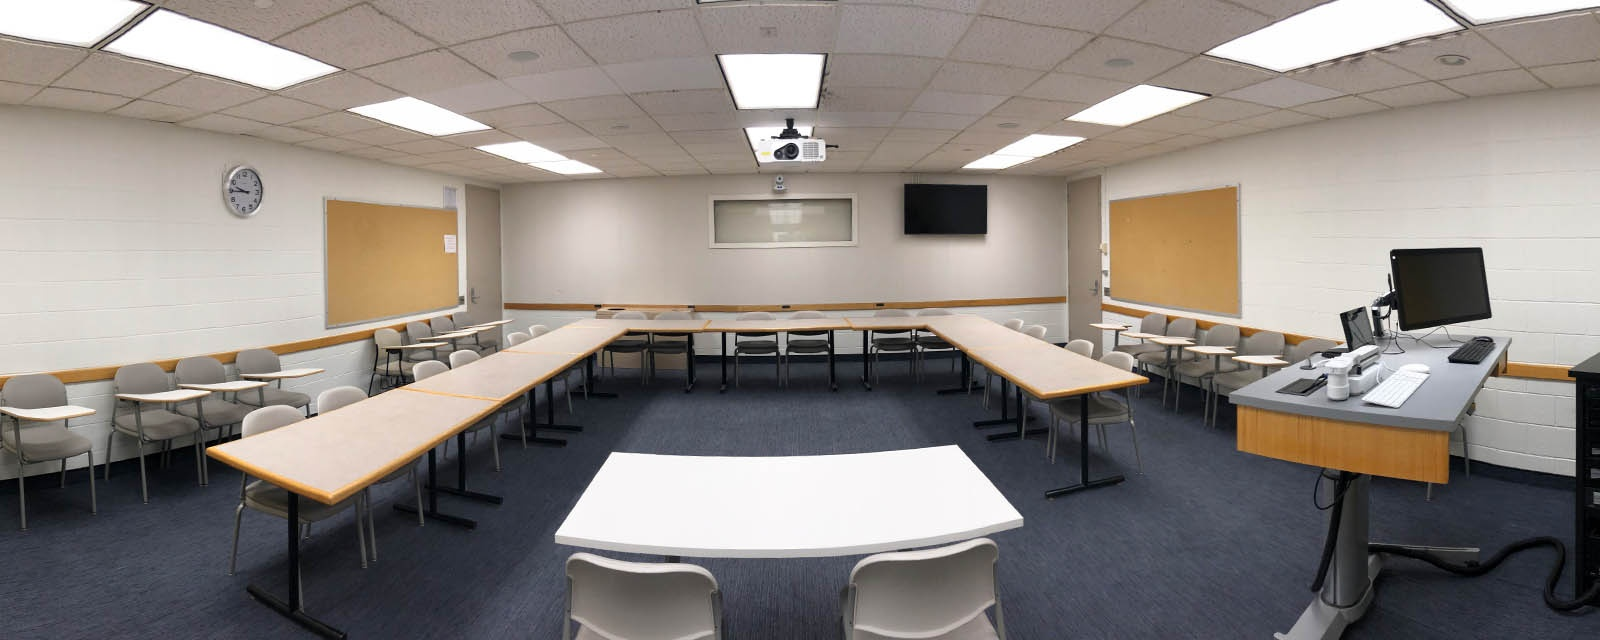 Panorama of N2 340 from the front of the classroom, teaching station and als on the right, chairs and tables in the center of the room.